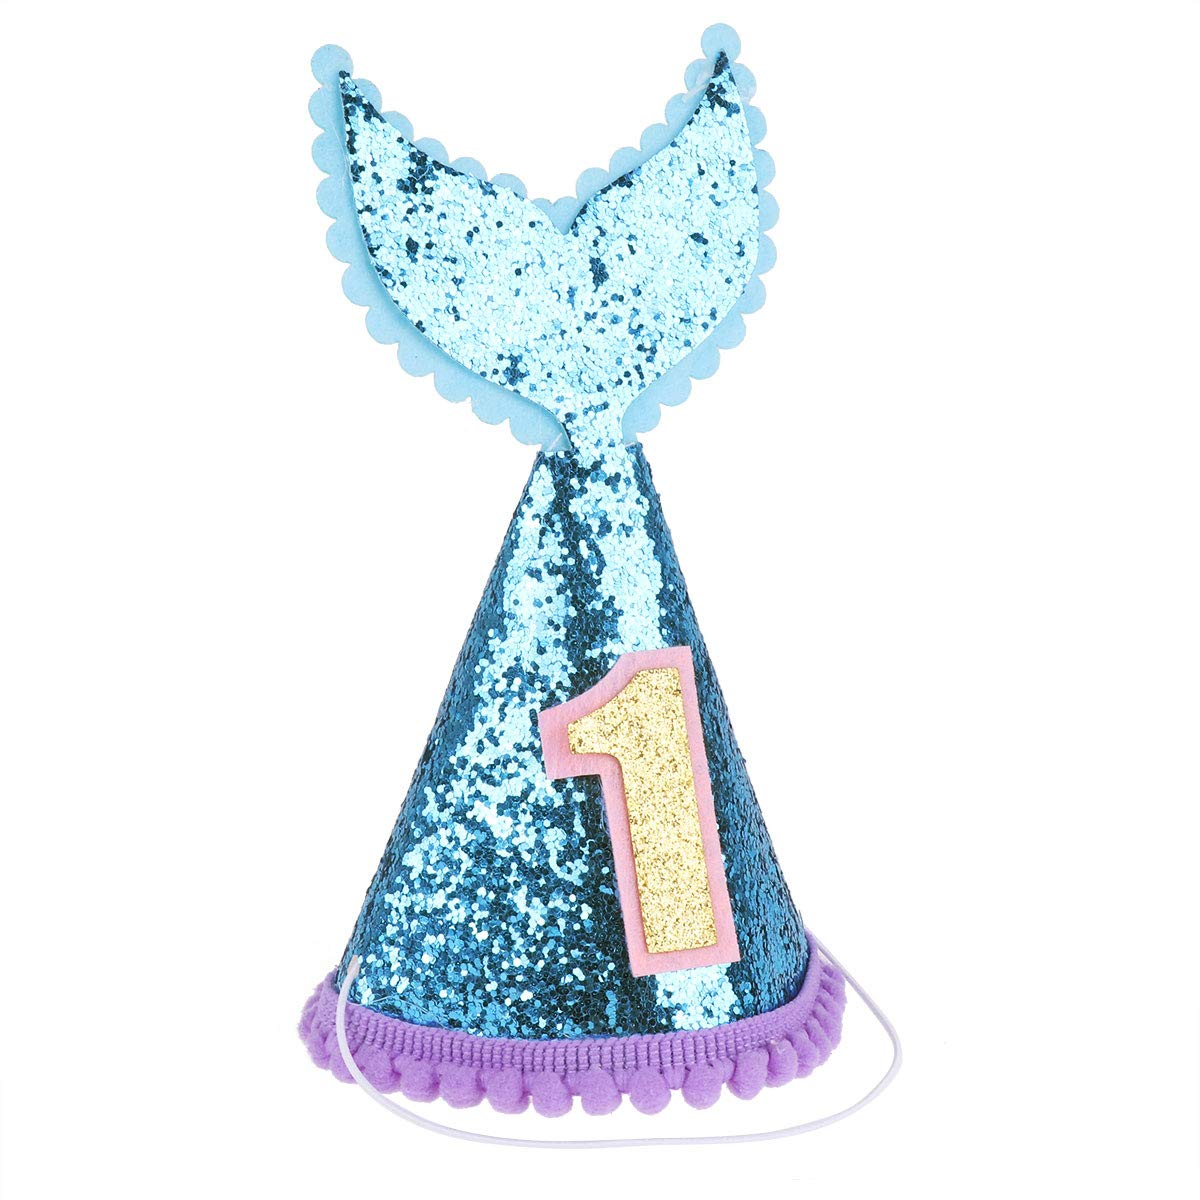 CHICTRY Infant Baby Girls Party Supplies Sequined Mermaid Tail 1st Birthday Cone Hat with Adjustable Headband BlueΠnk One Size